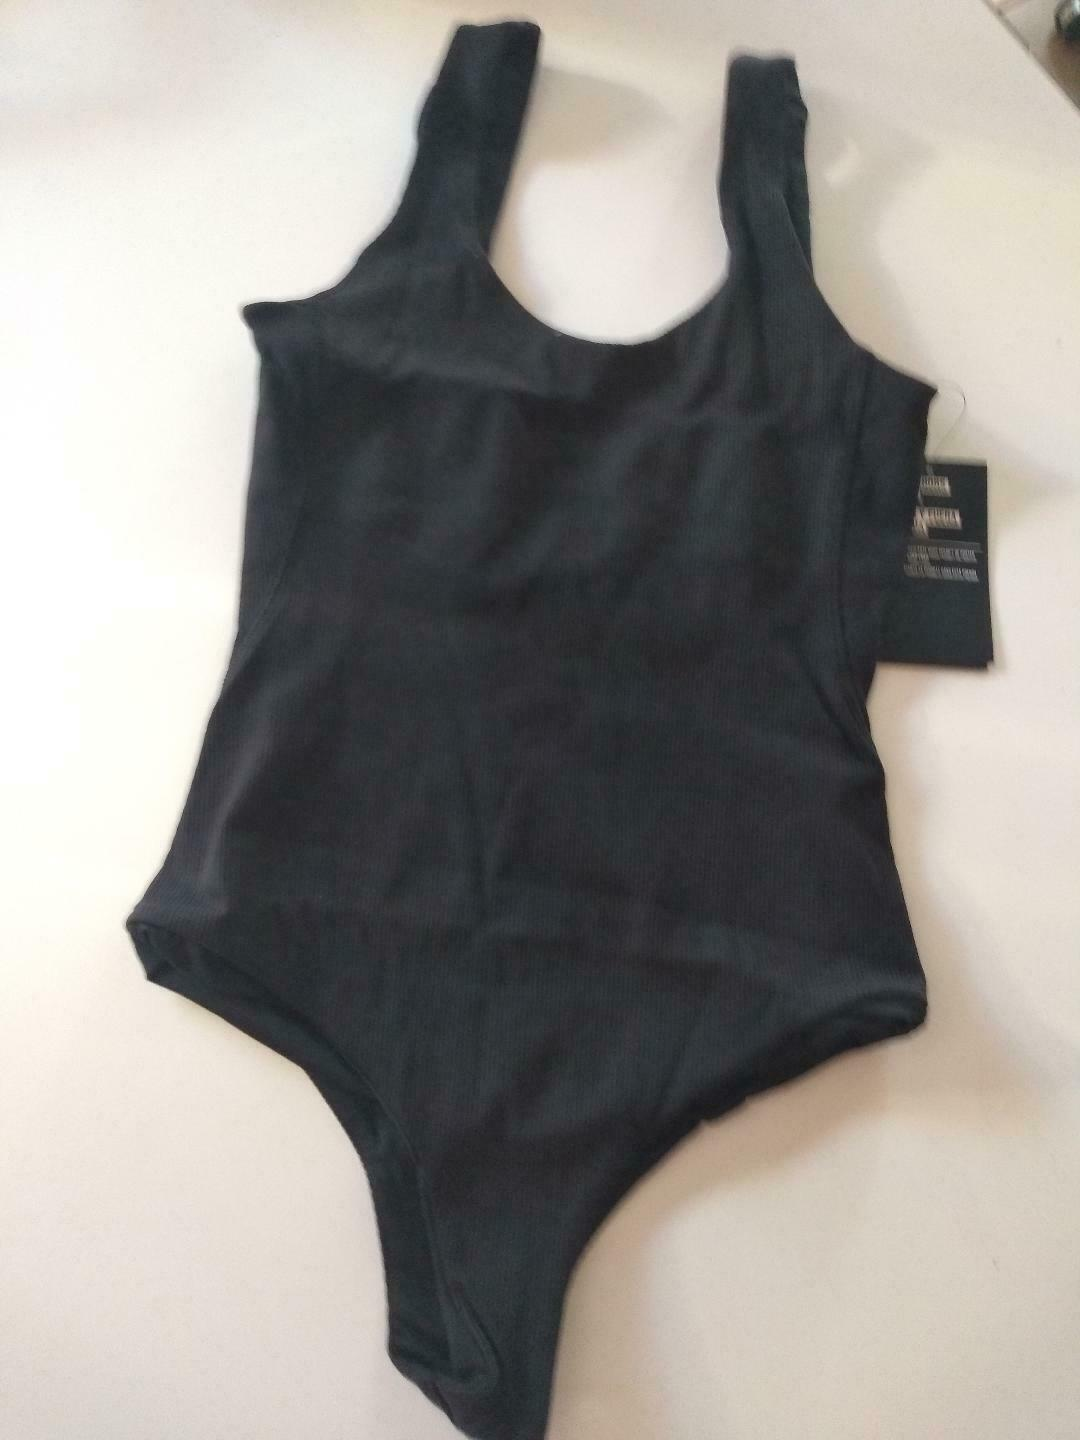 Hurley Q/D BP Body Suit Size Small